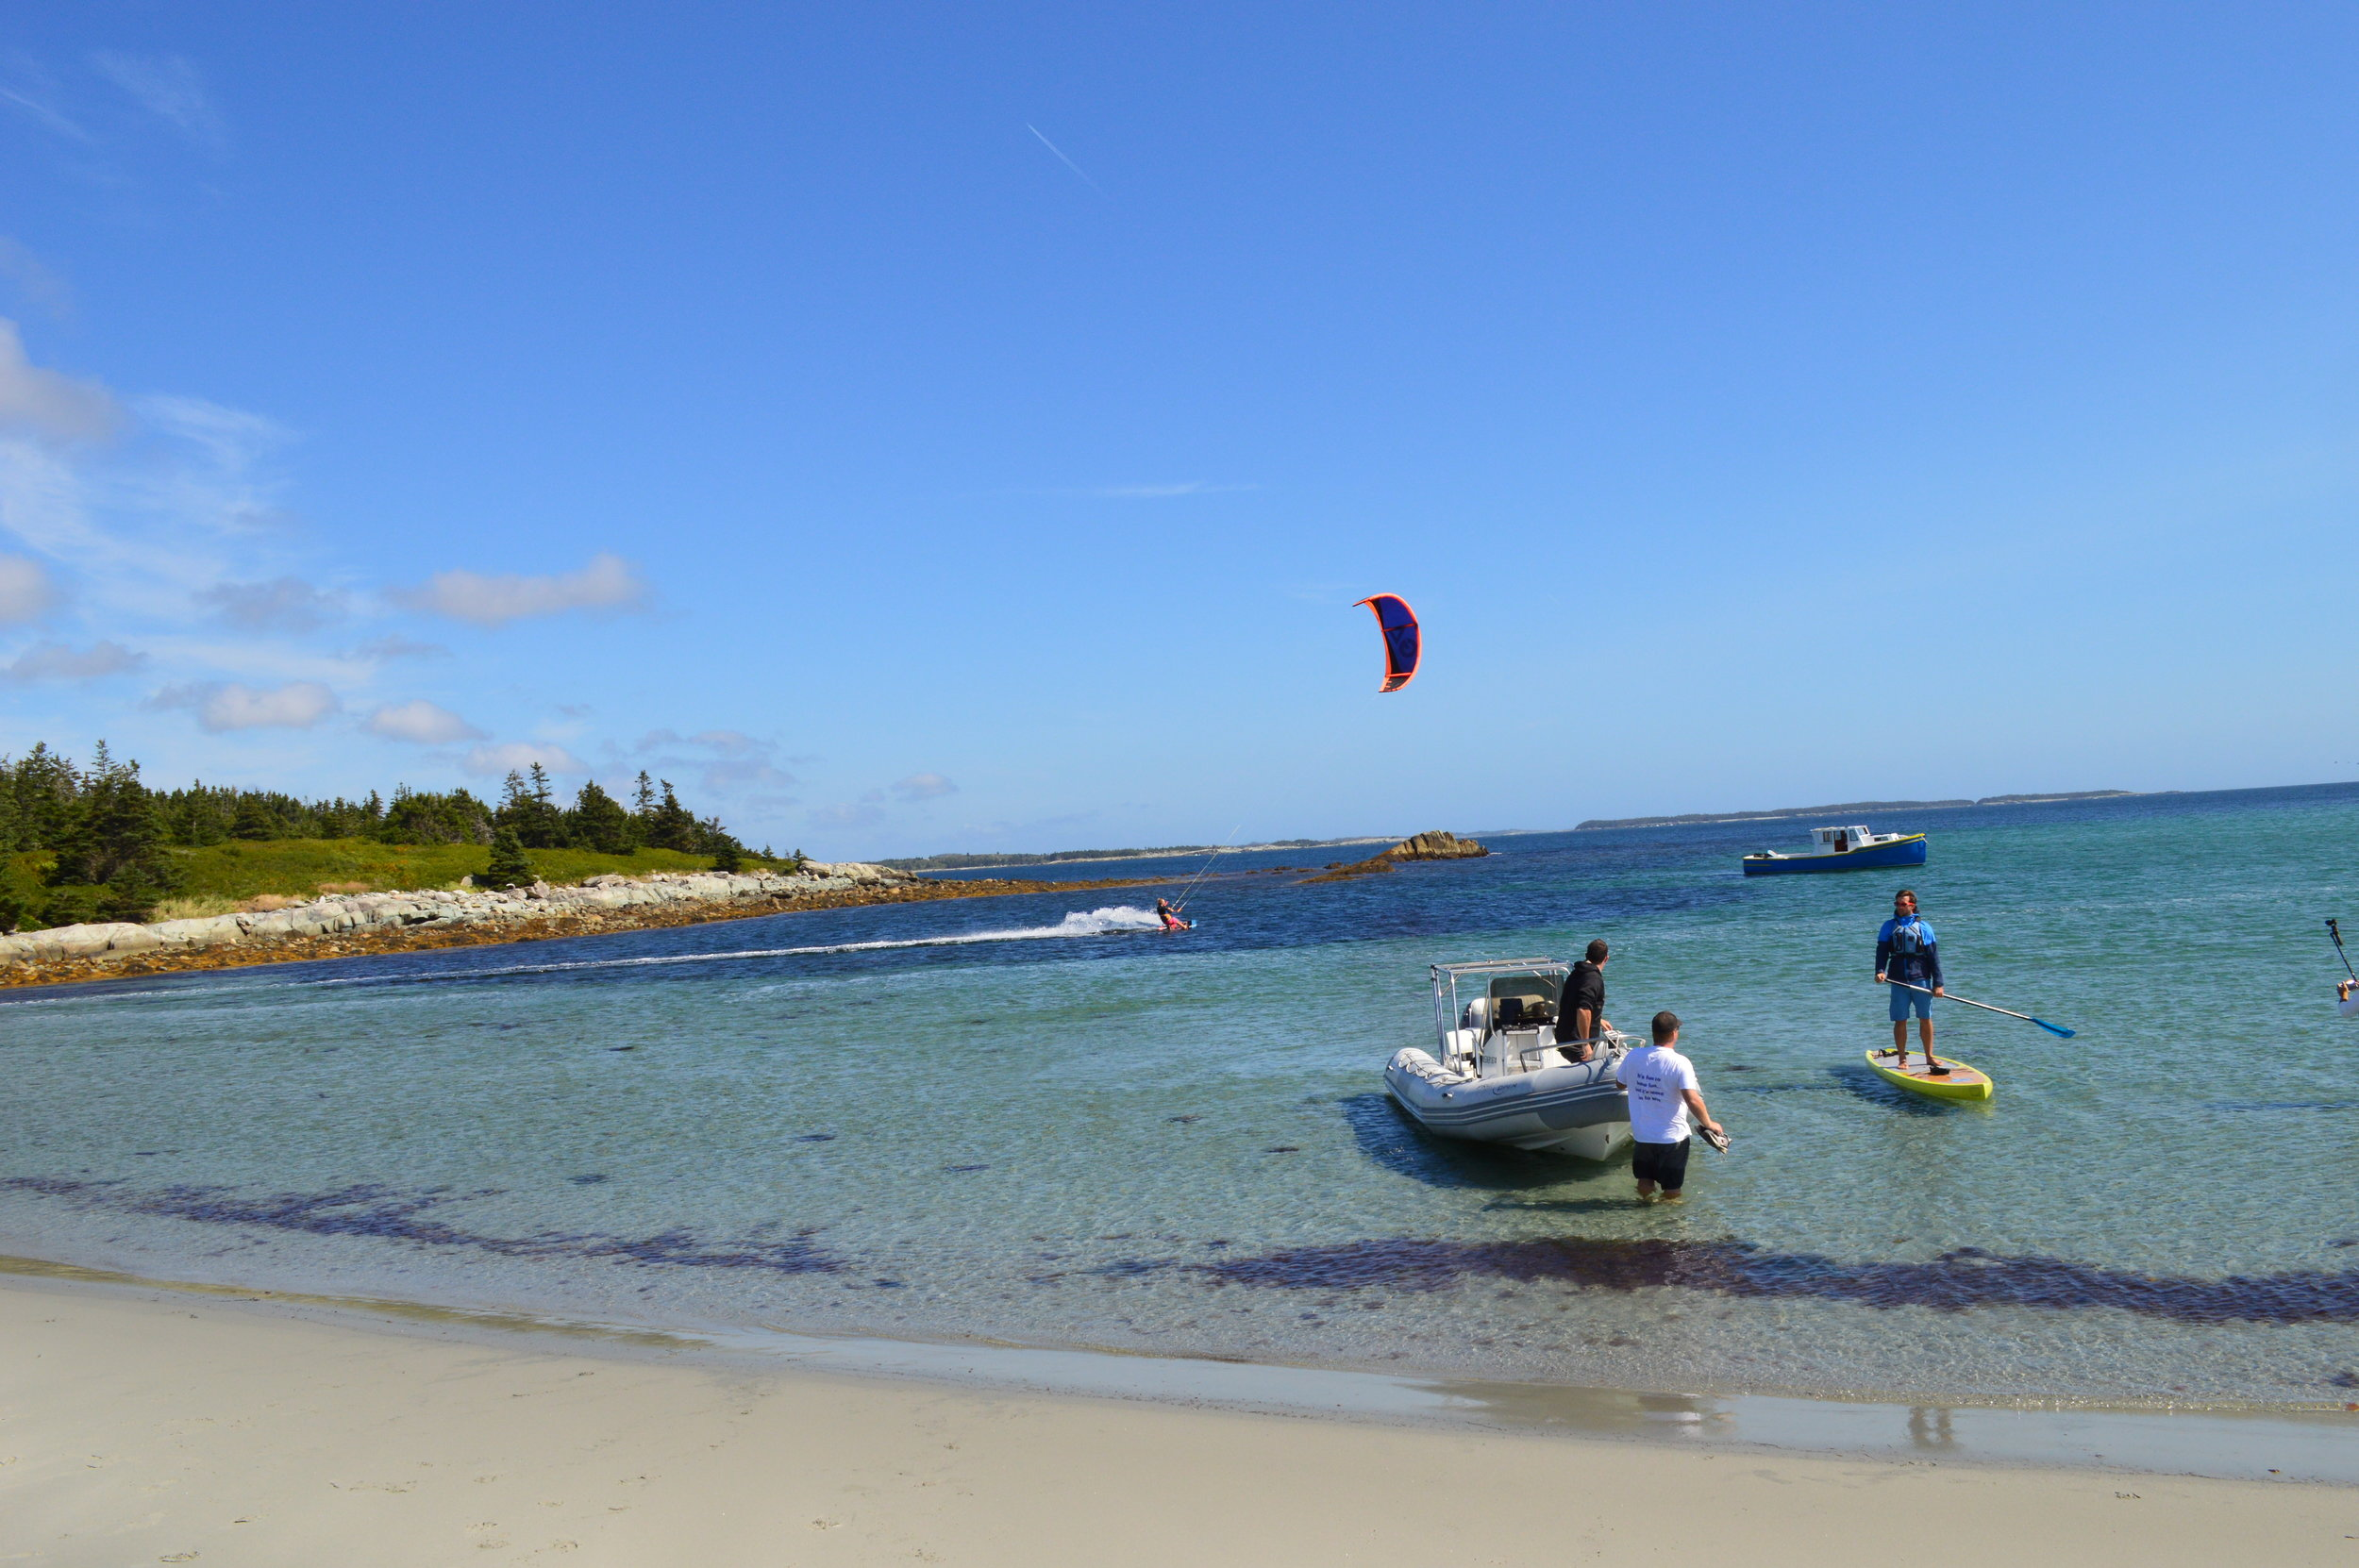 Kitesurfer Mark Moore, Jan LaPierre of A for Adventure, Joel and Travis helping to ferry everyone to shore from Brian Murphy's Boat!